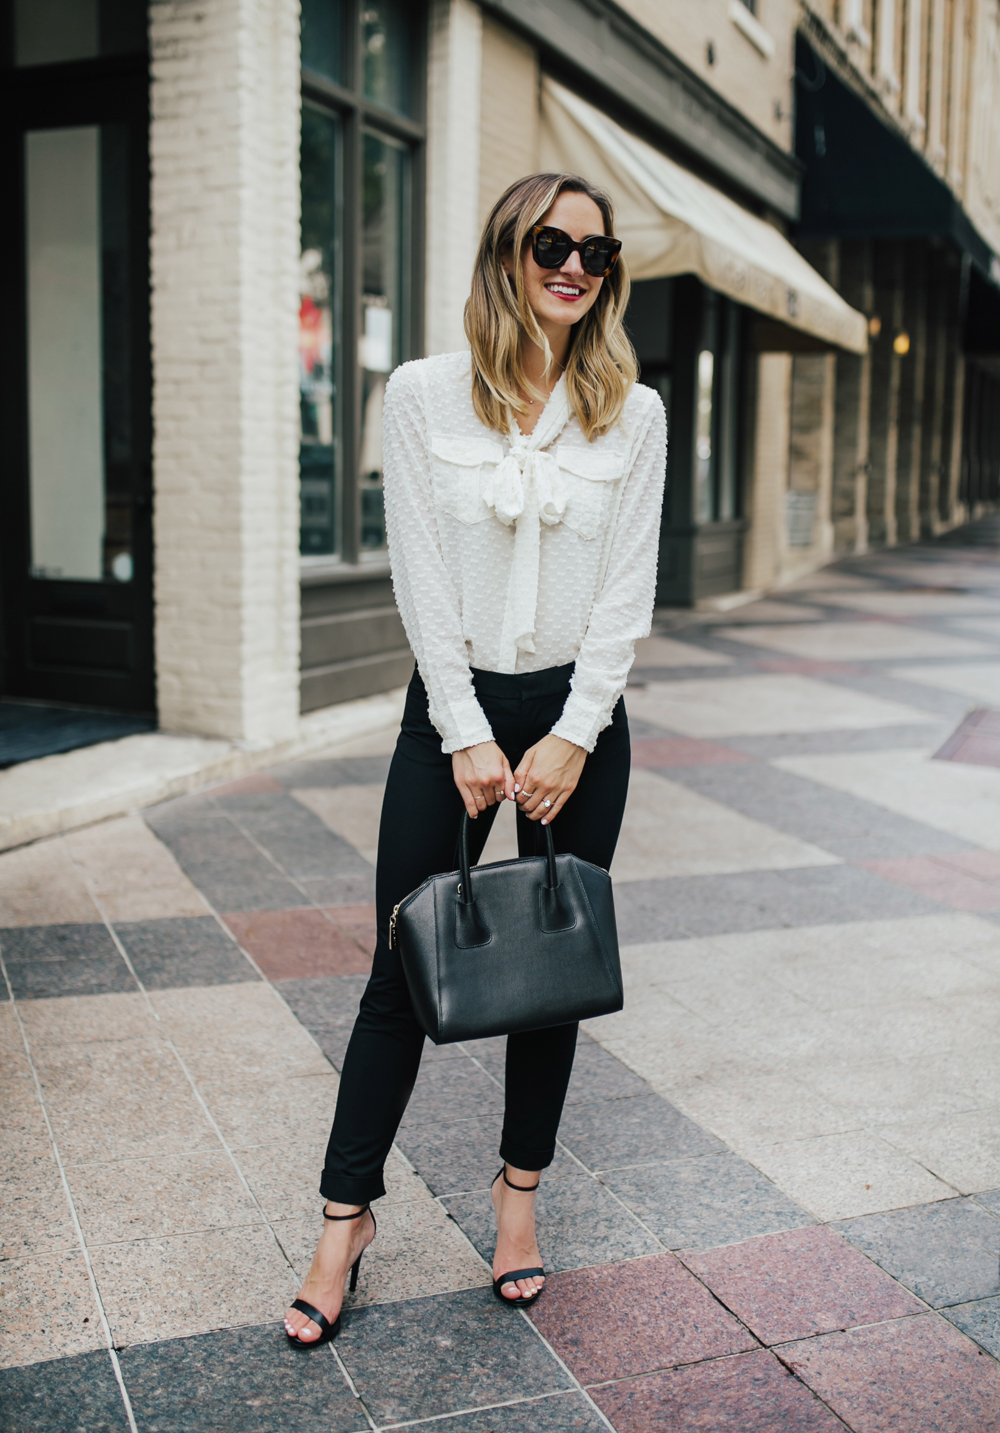 livvyland-blog-olivia-watson-fashion-blogger-banana-republic-sloan-black-dress-pants-pussybow-top-work-wear-outfit-inspiration-classic-chic-3